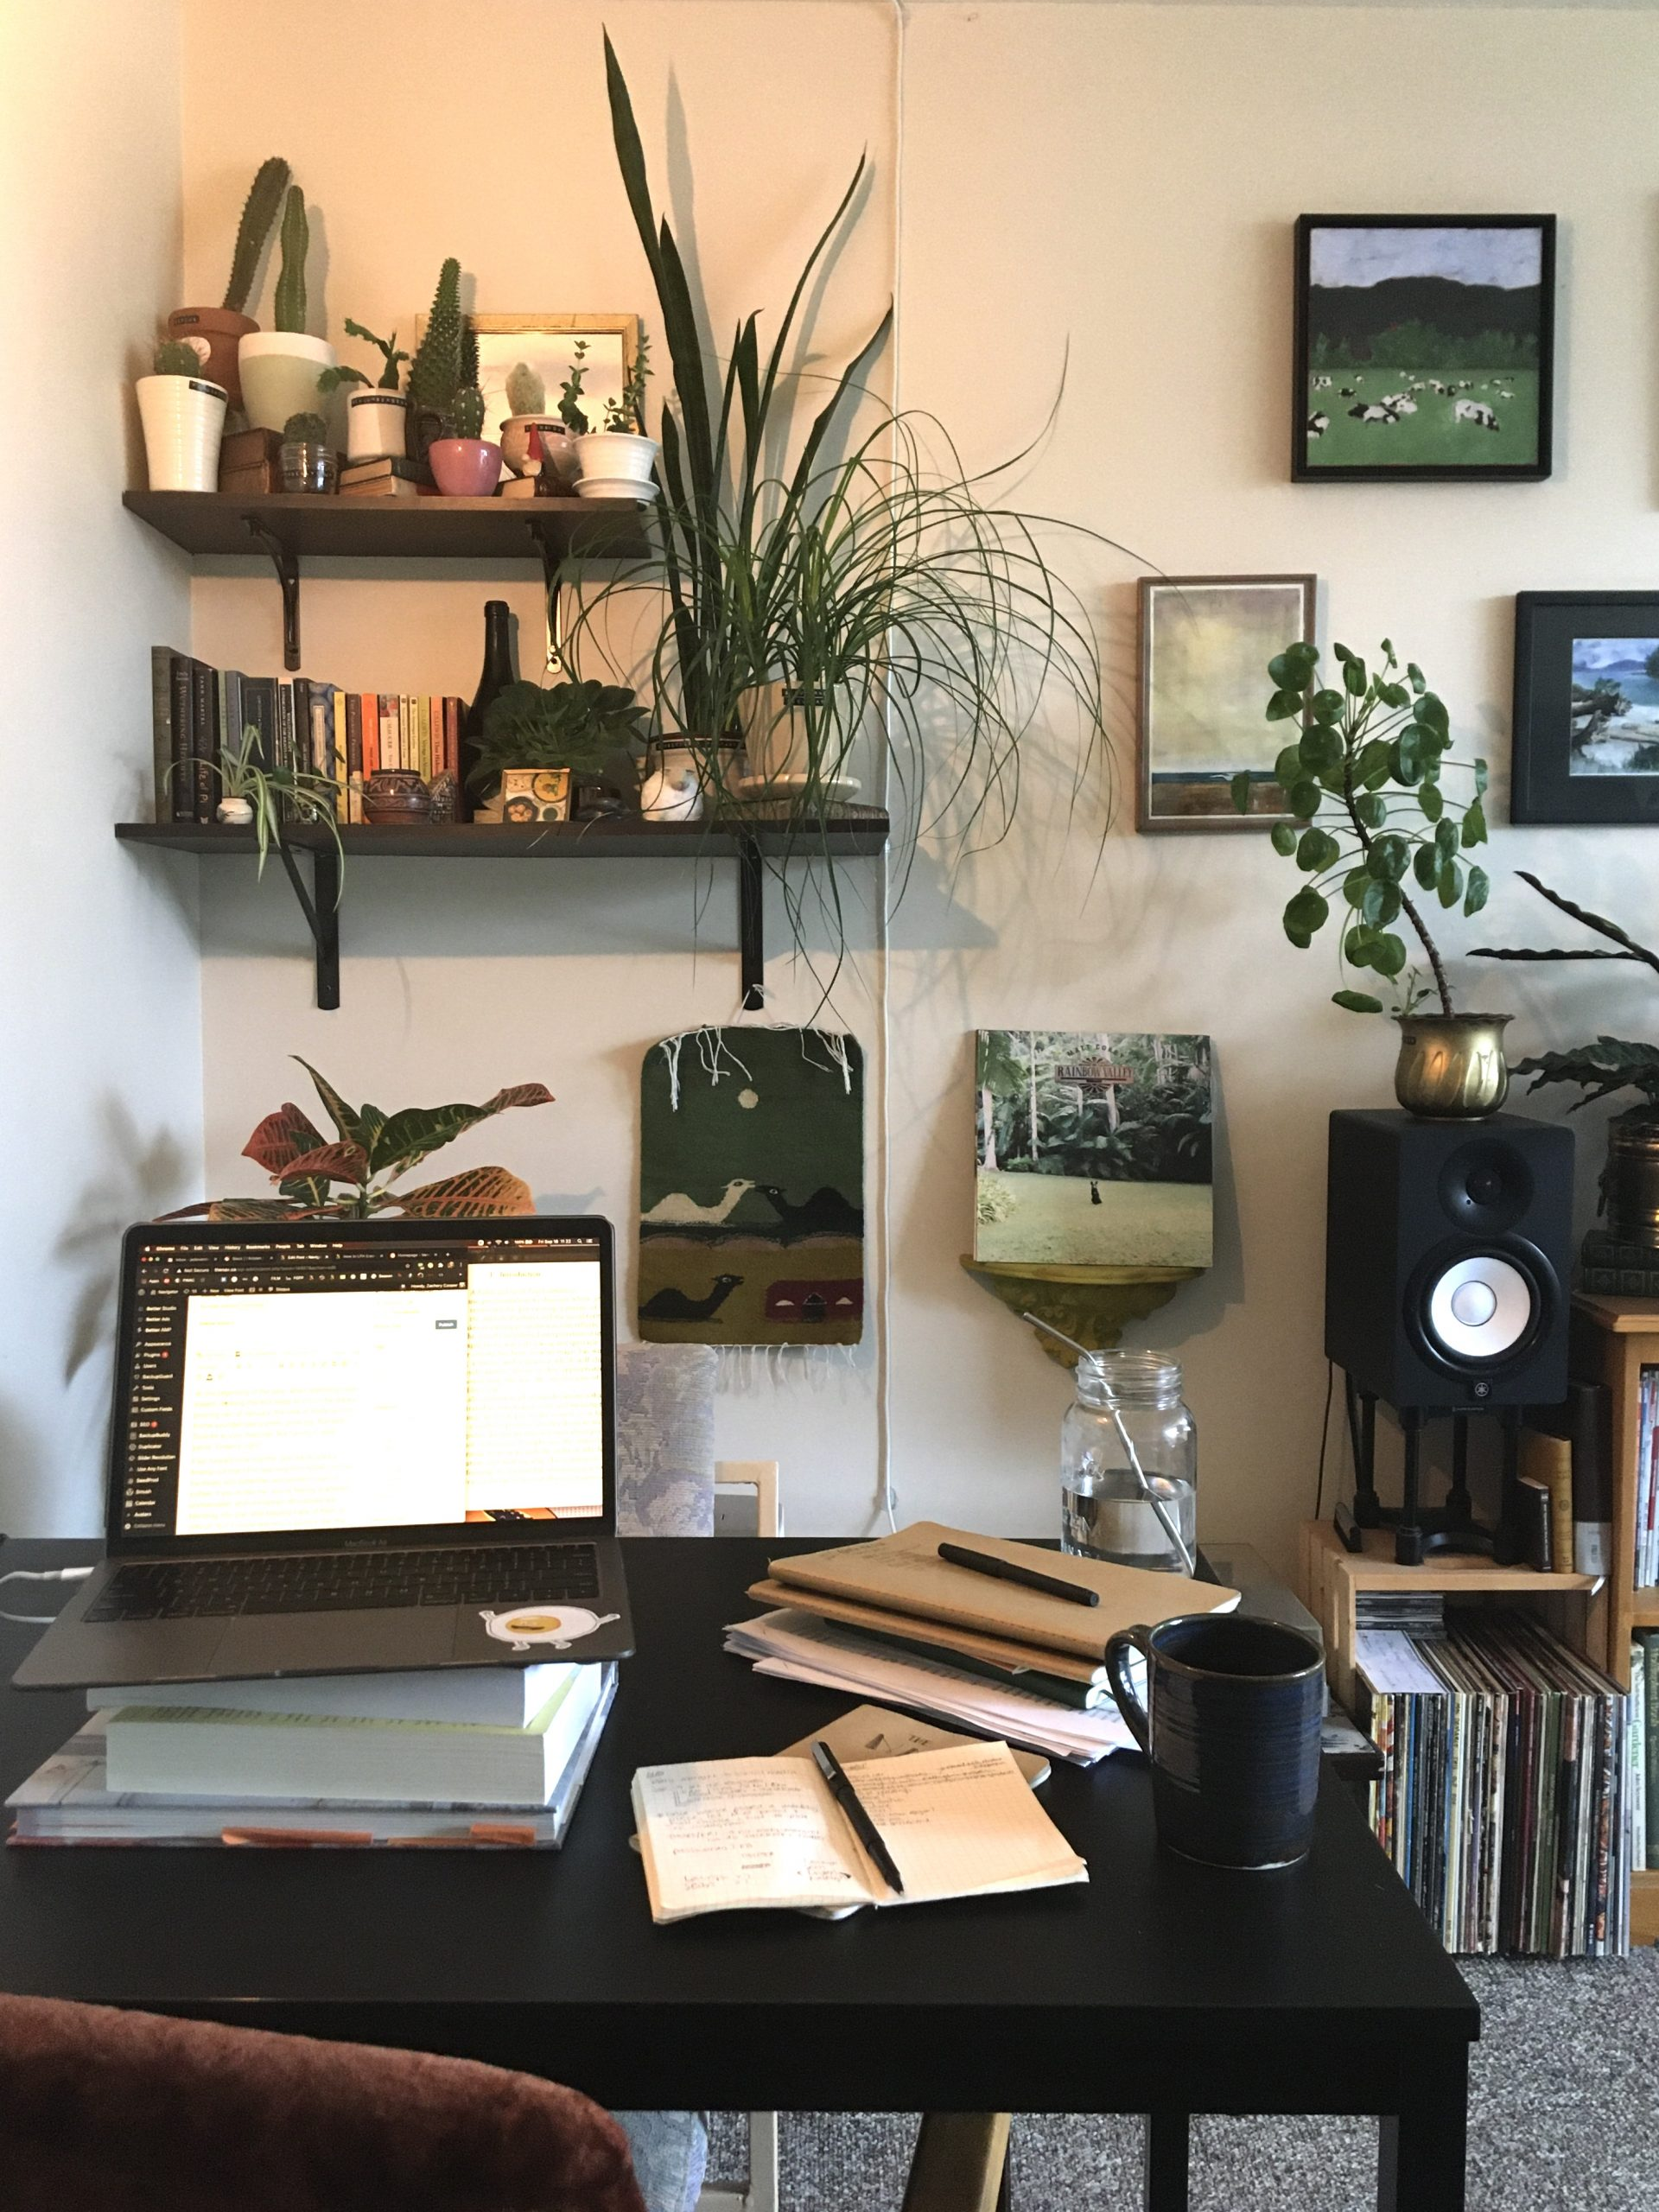 A laptop, notebooks, and mug of coffee sit on a desk in front of a wall of plants and books